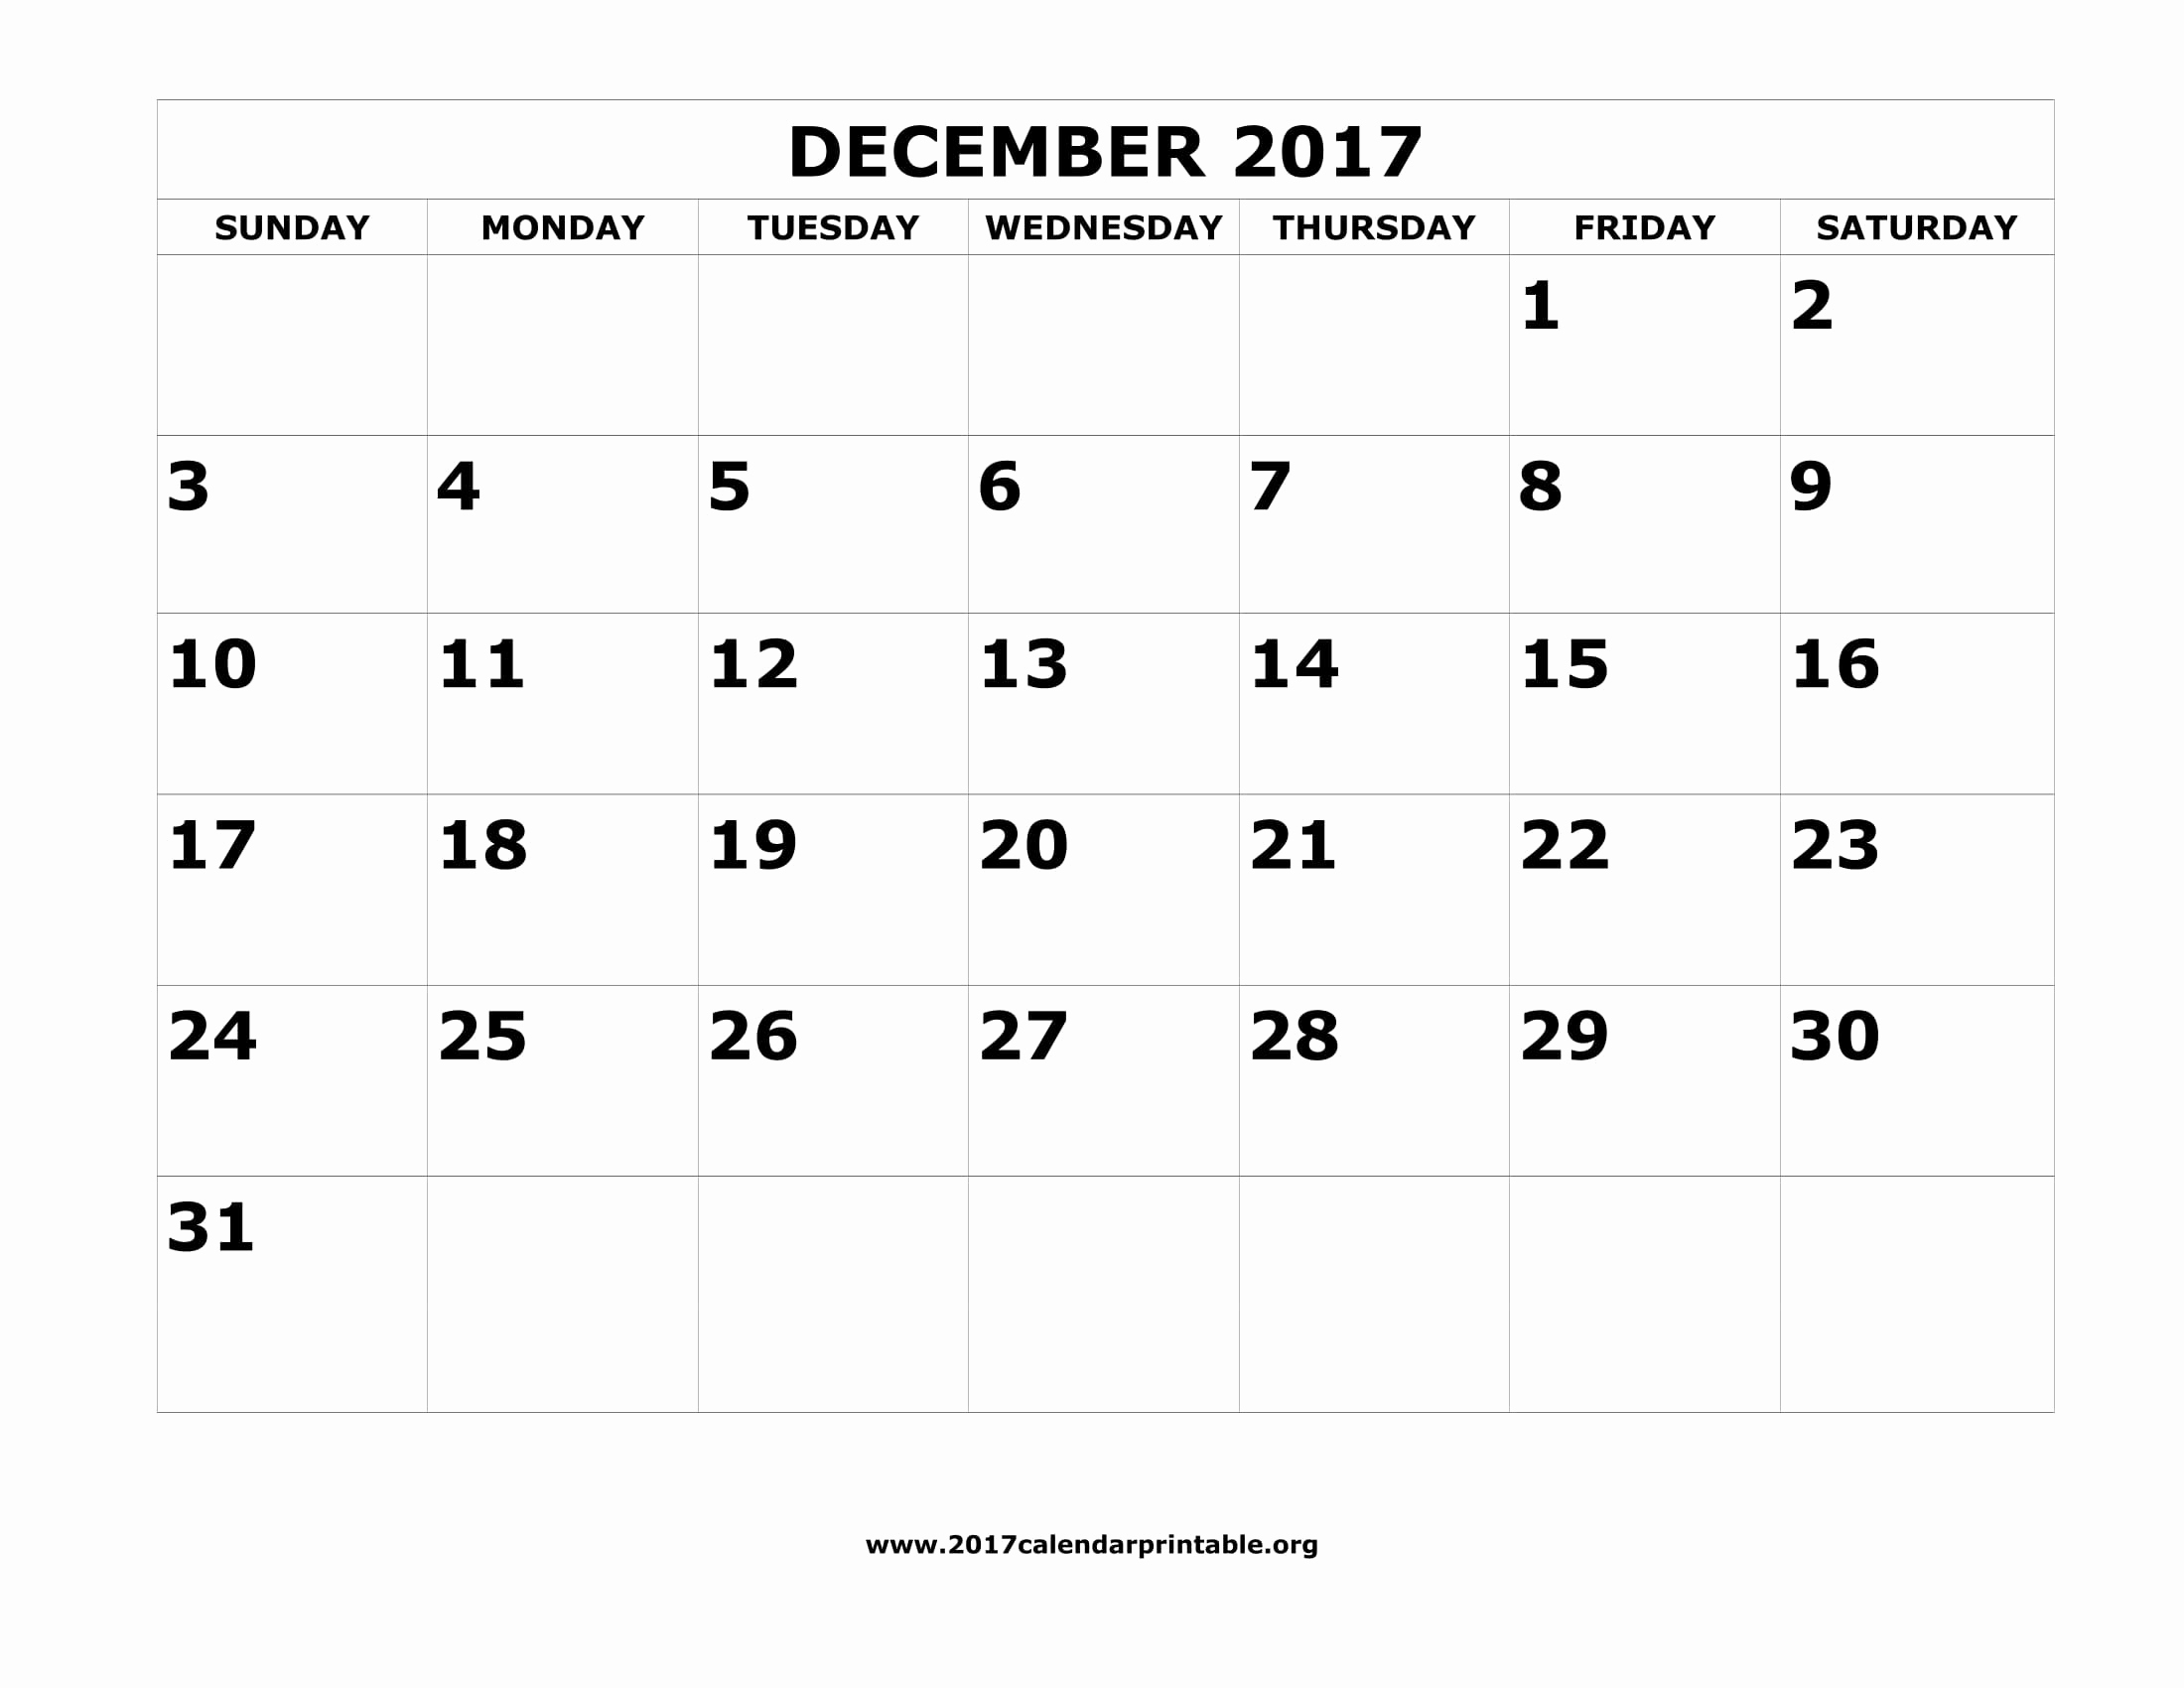 Kalender 2016 Mit Feiertage Luxus Download December 2017 Calendar Printable with Federal Holidays and